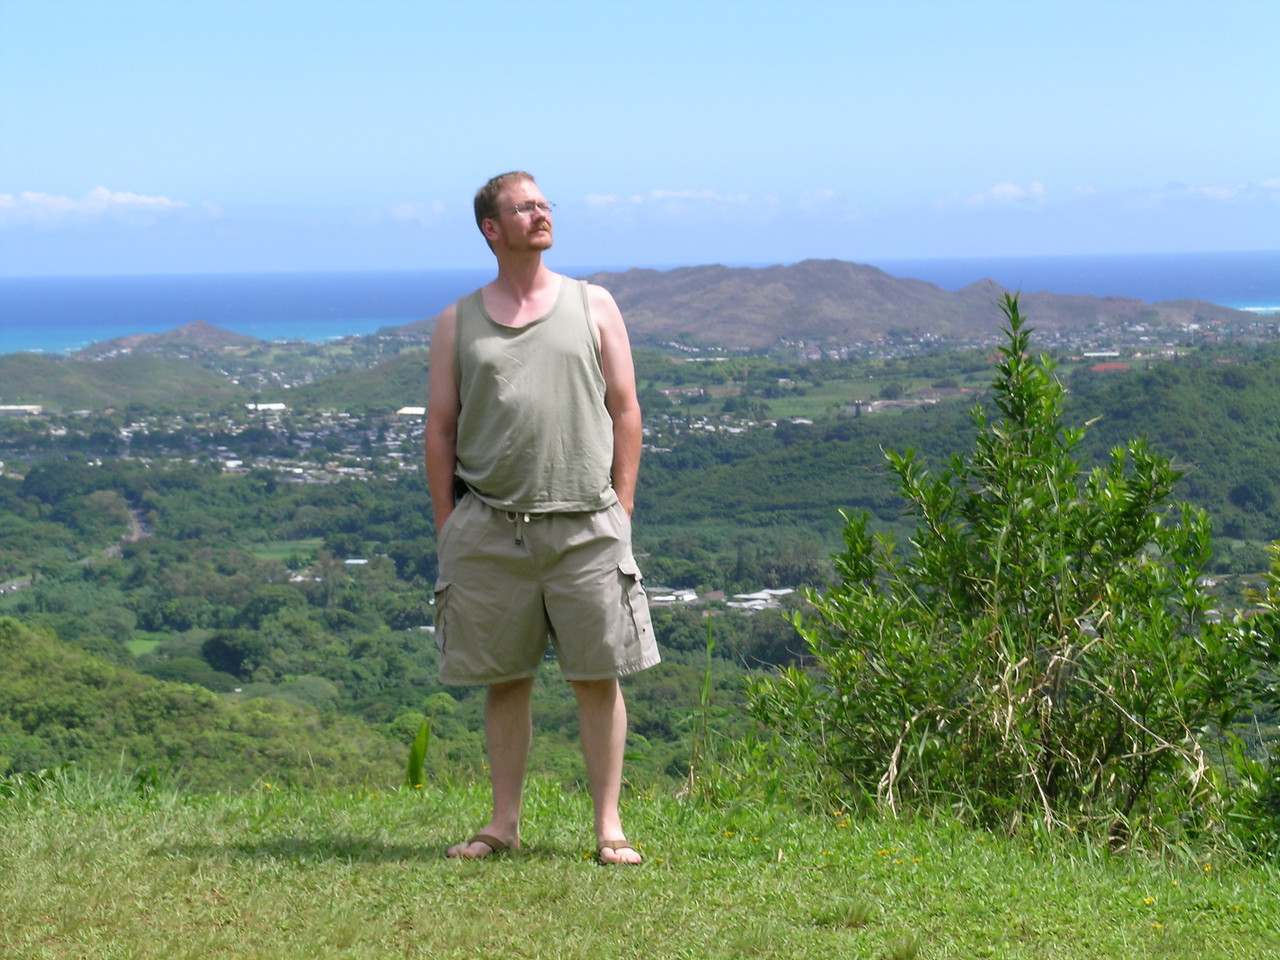 Allen looking out at the Pali Lookout